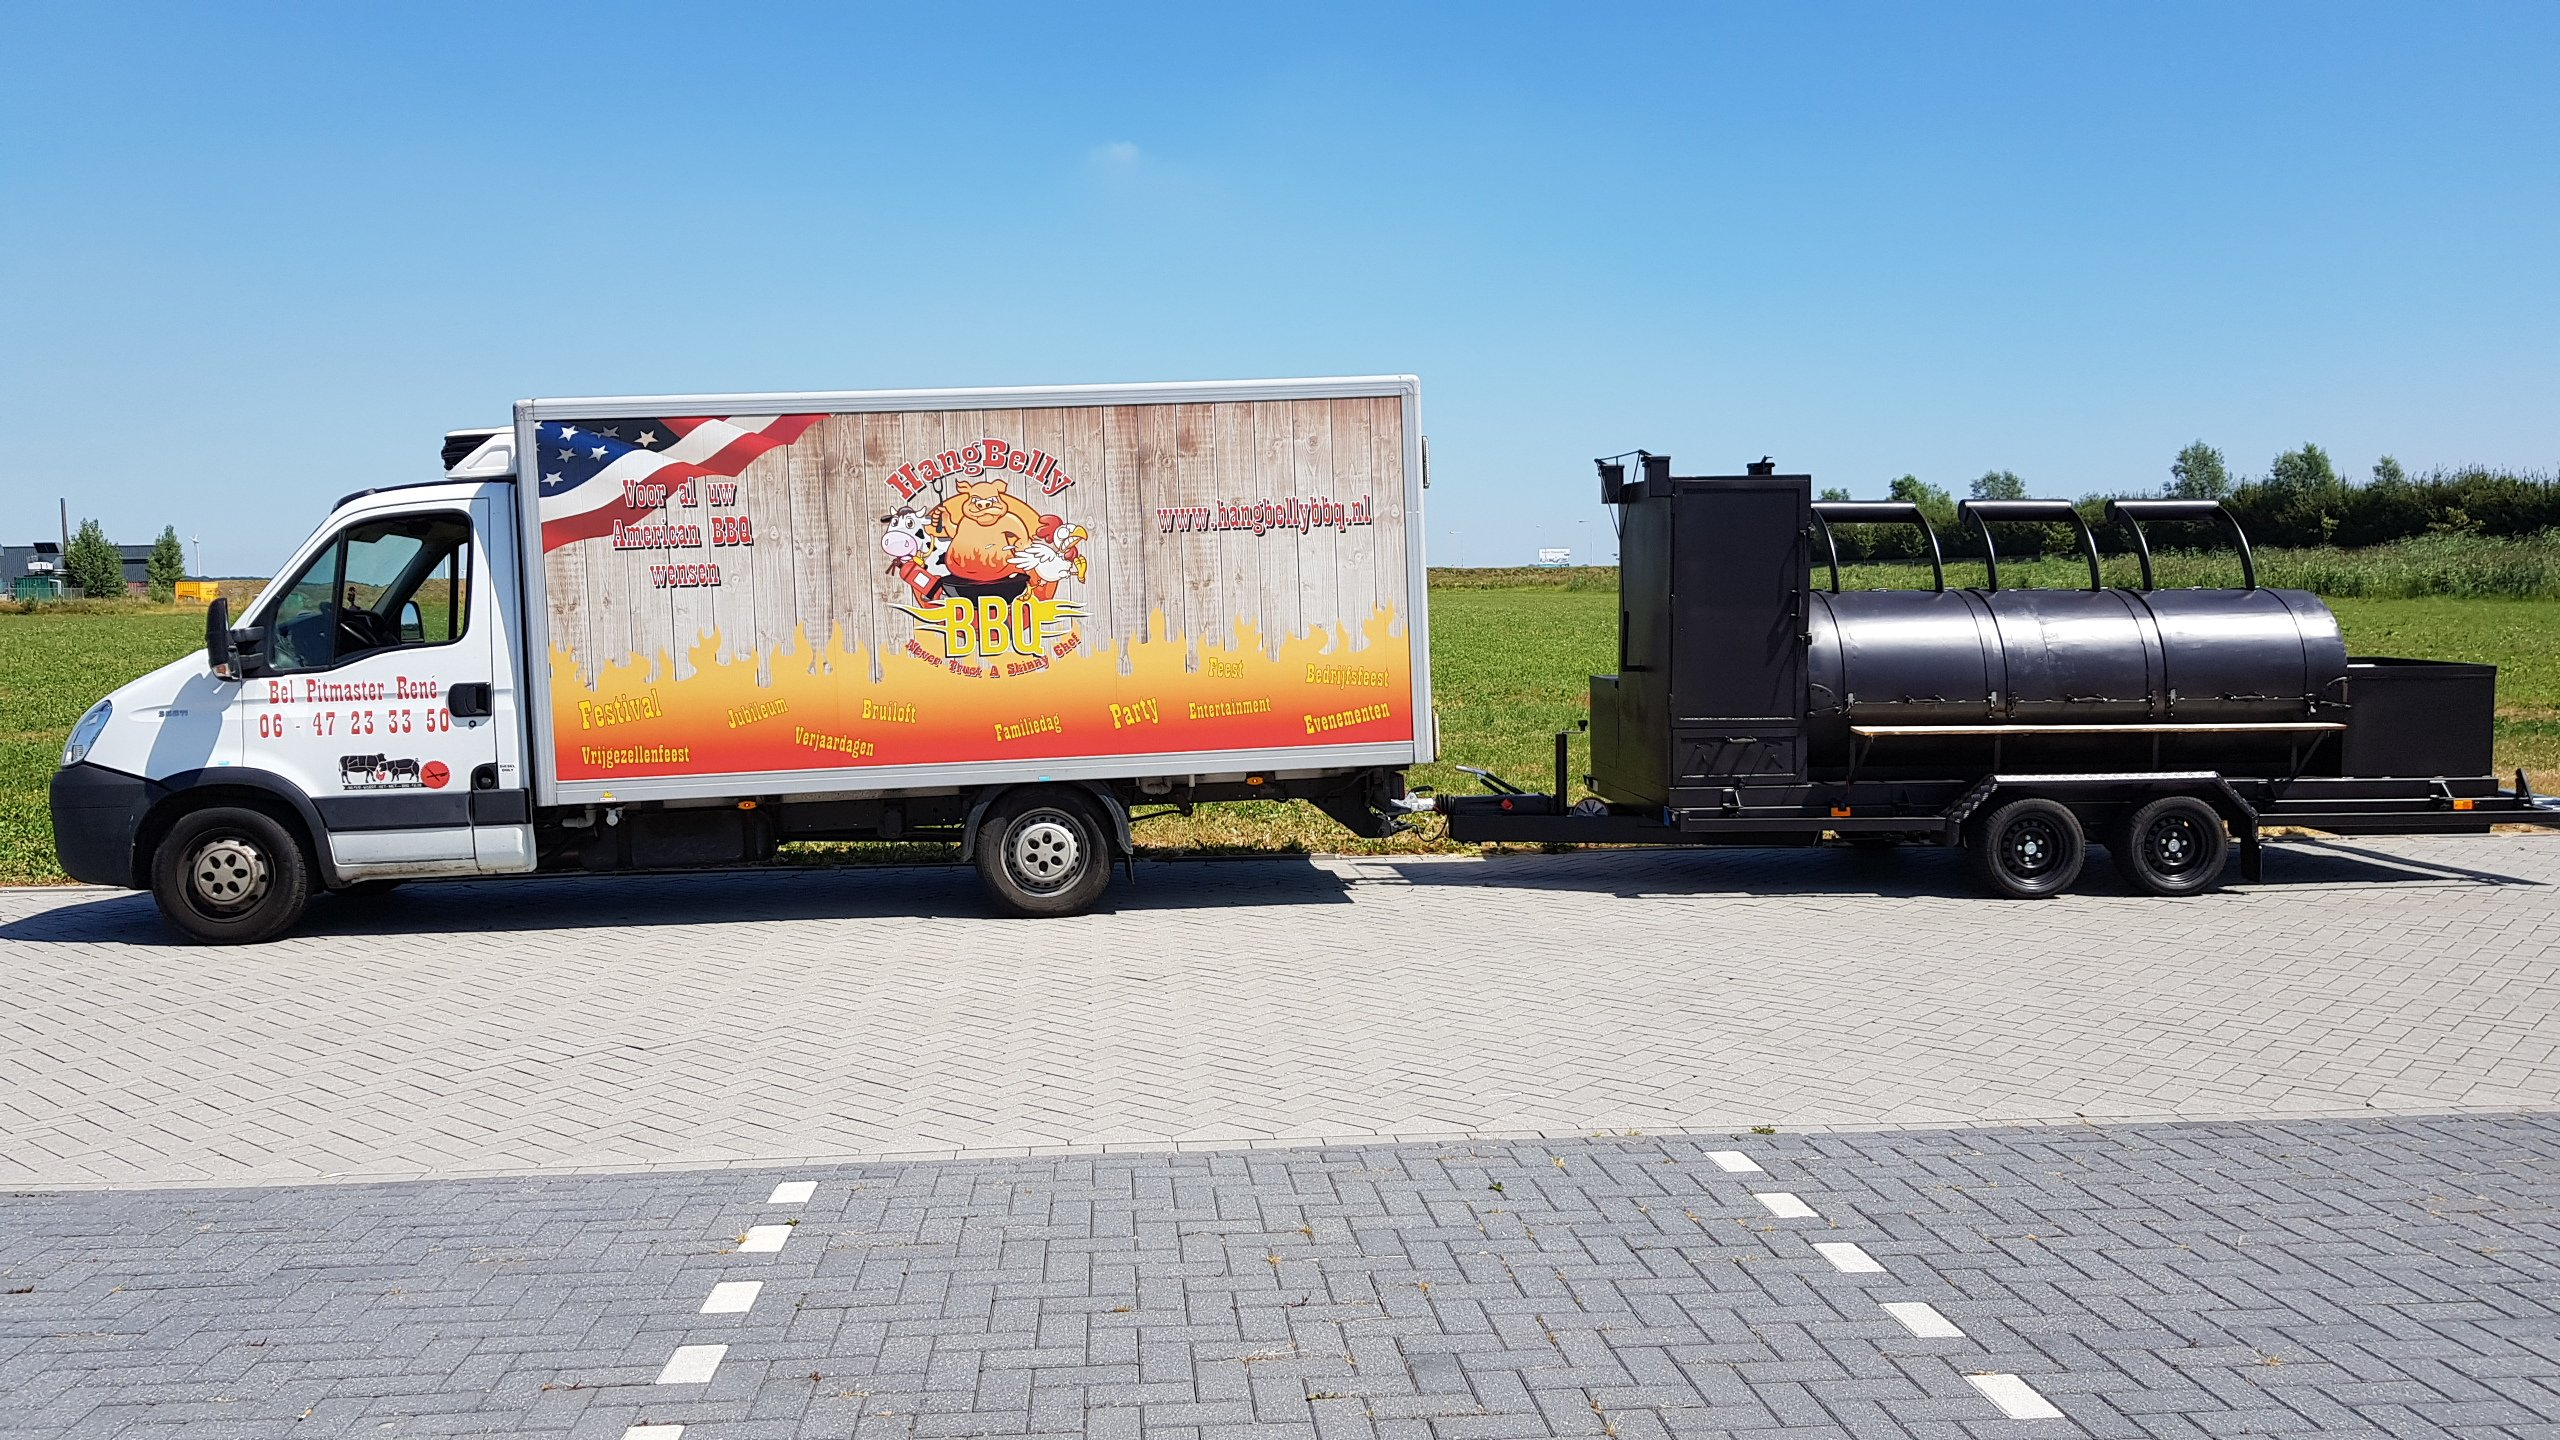 HangBelly Koelwagen en The Beast